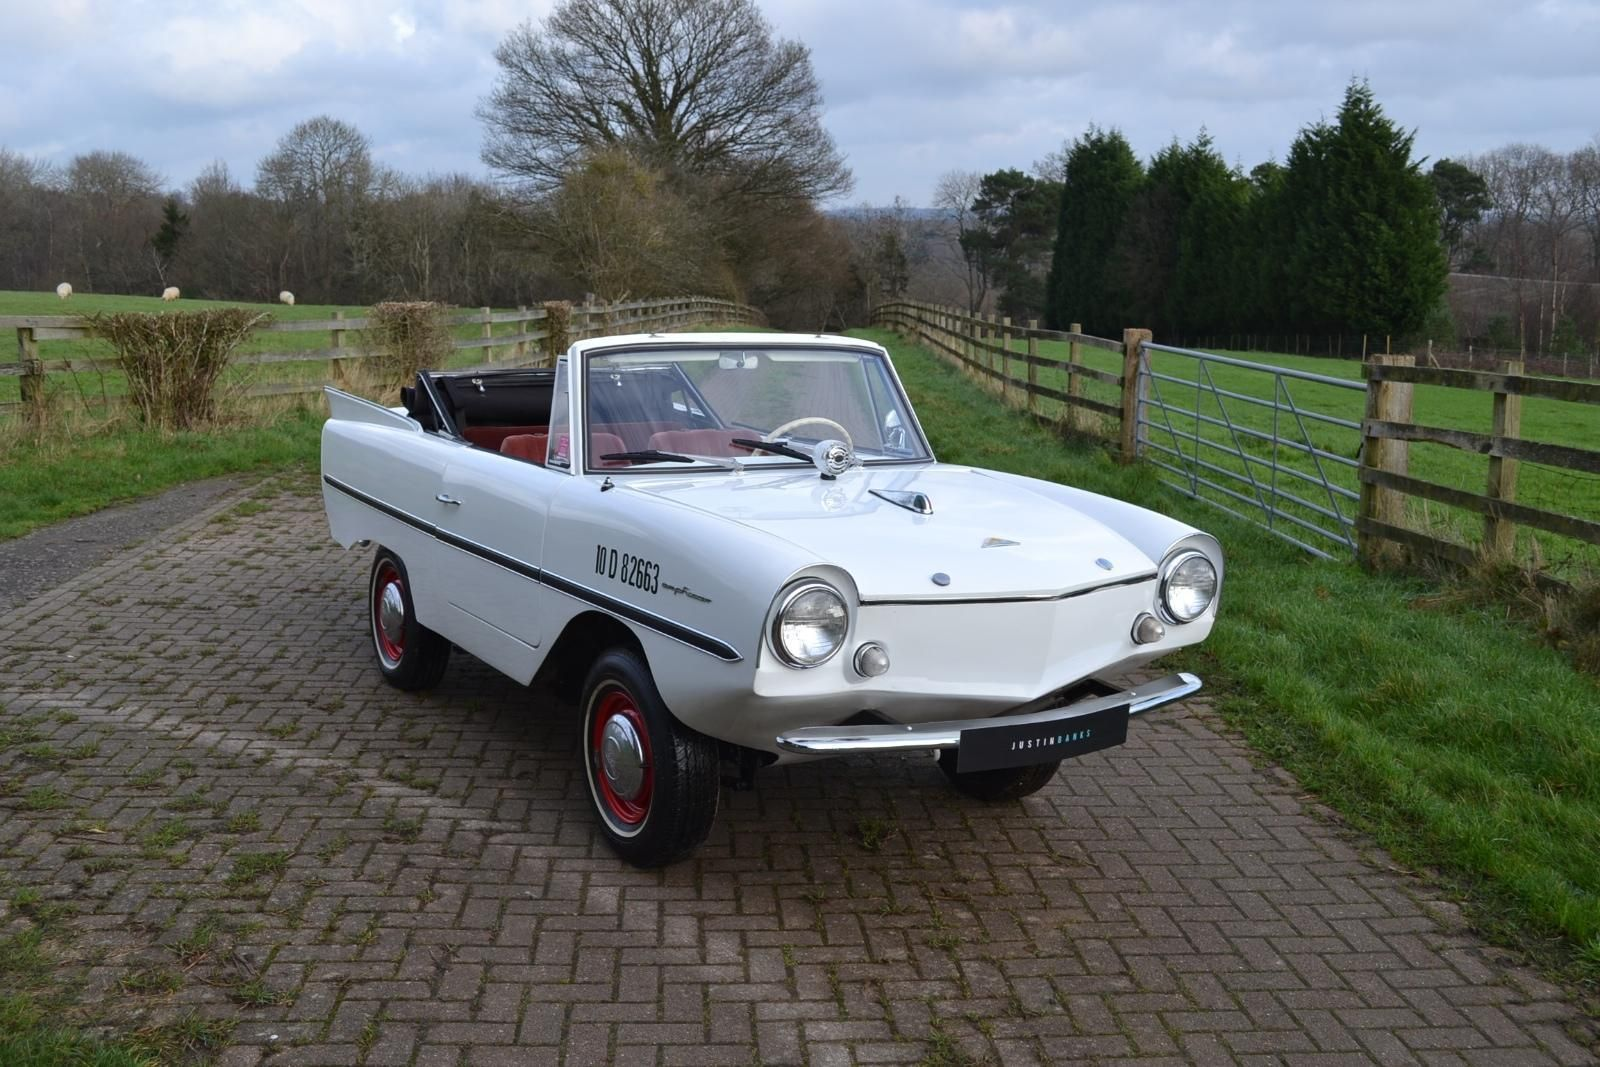 1962 Amphicar 770 Cabriolet LHD | Vehicle, Cars and Small cars